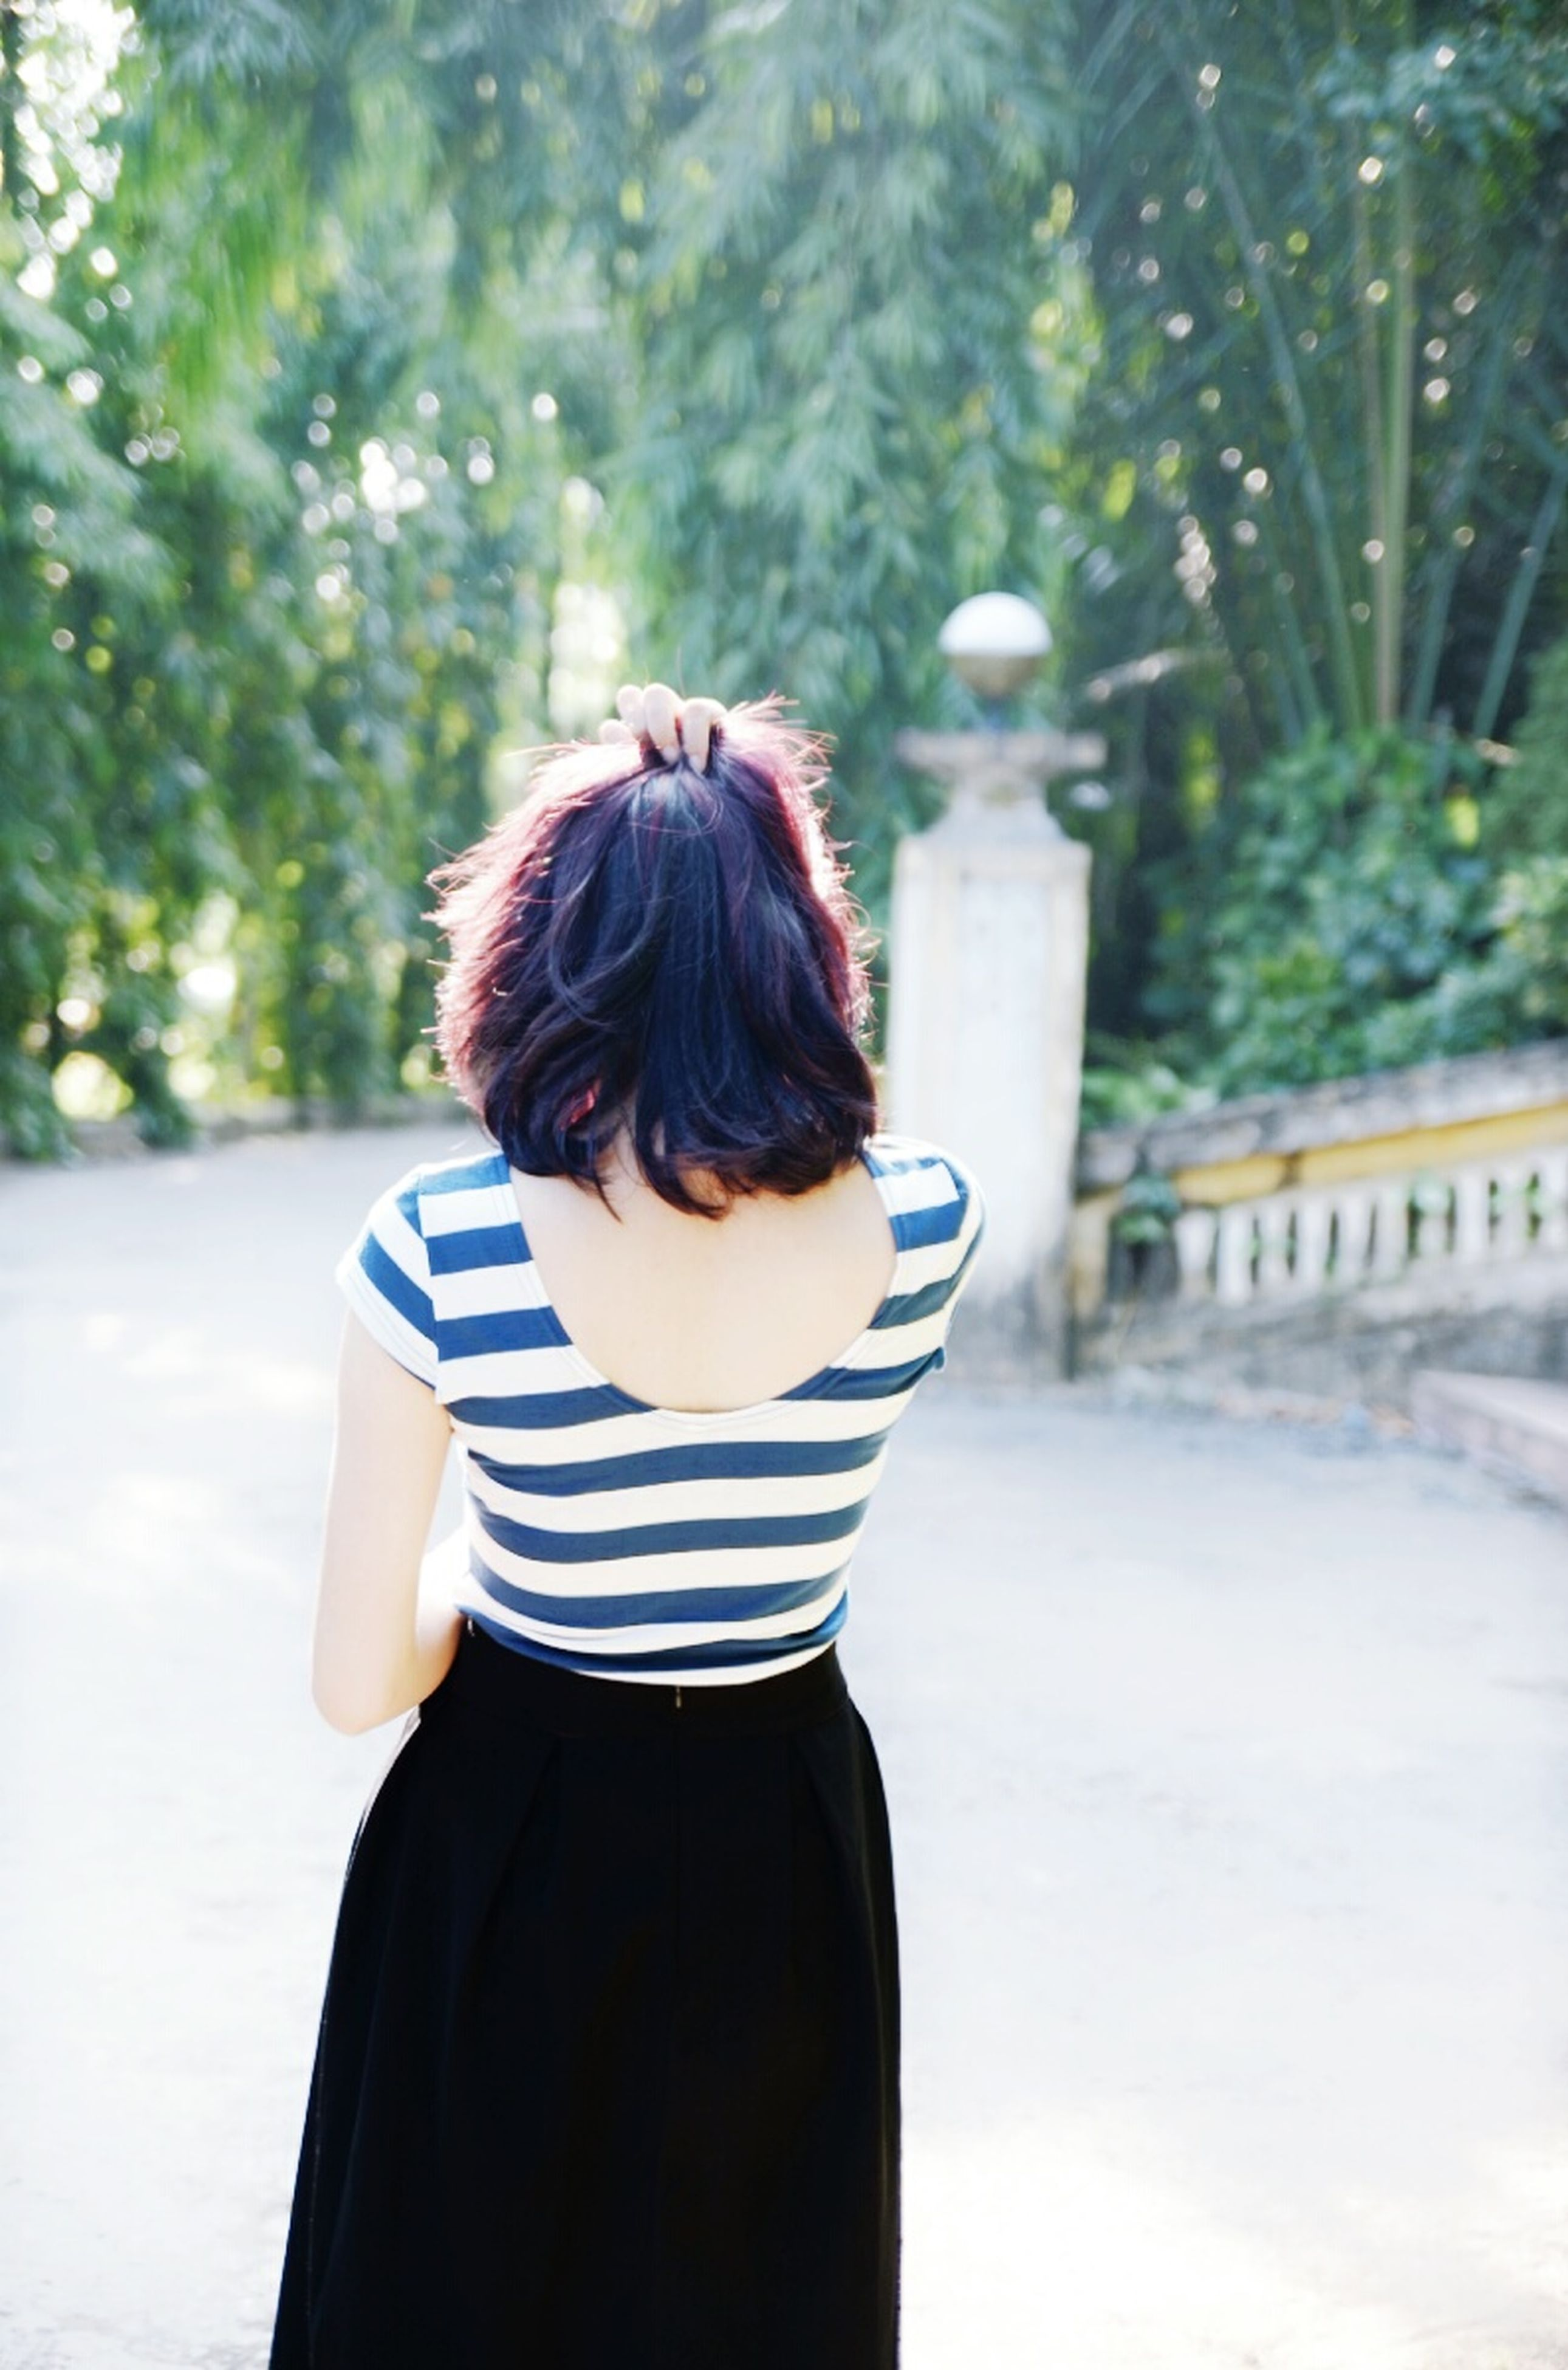 rear view, hairstyle, one person, back, real people, one woman only, human back, outdoors, day, only women, people, young adult, adults only, adult, human body part